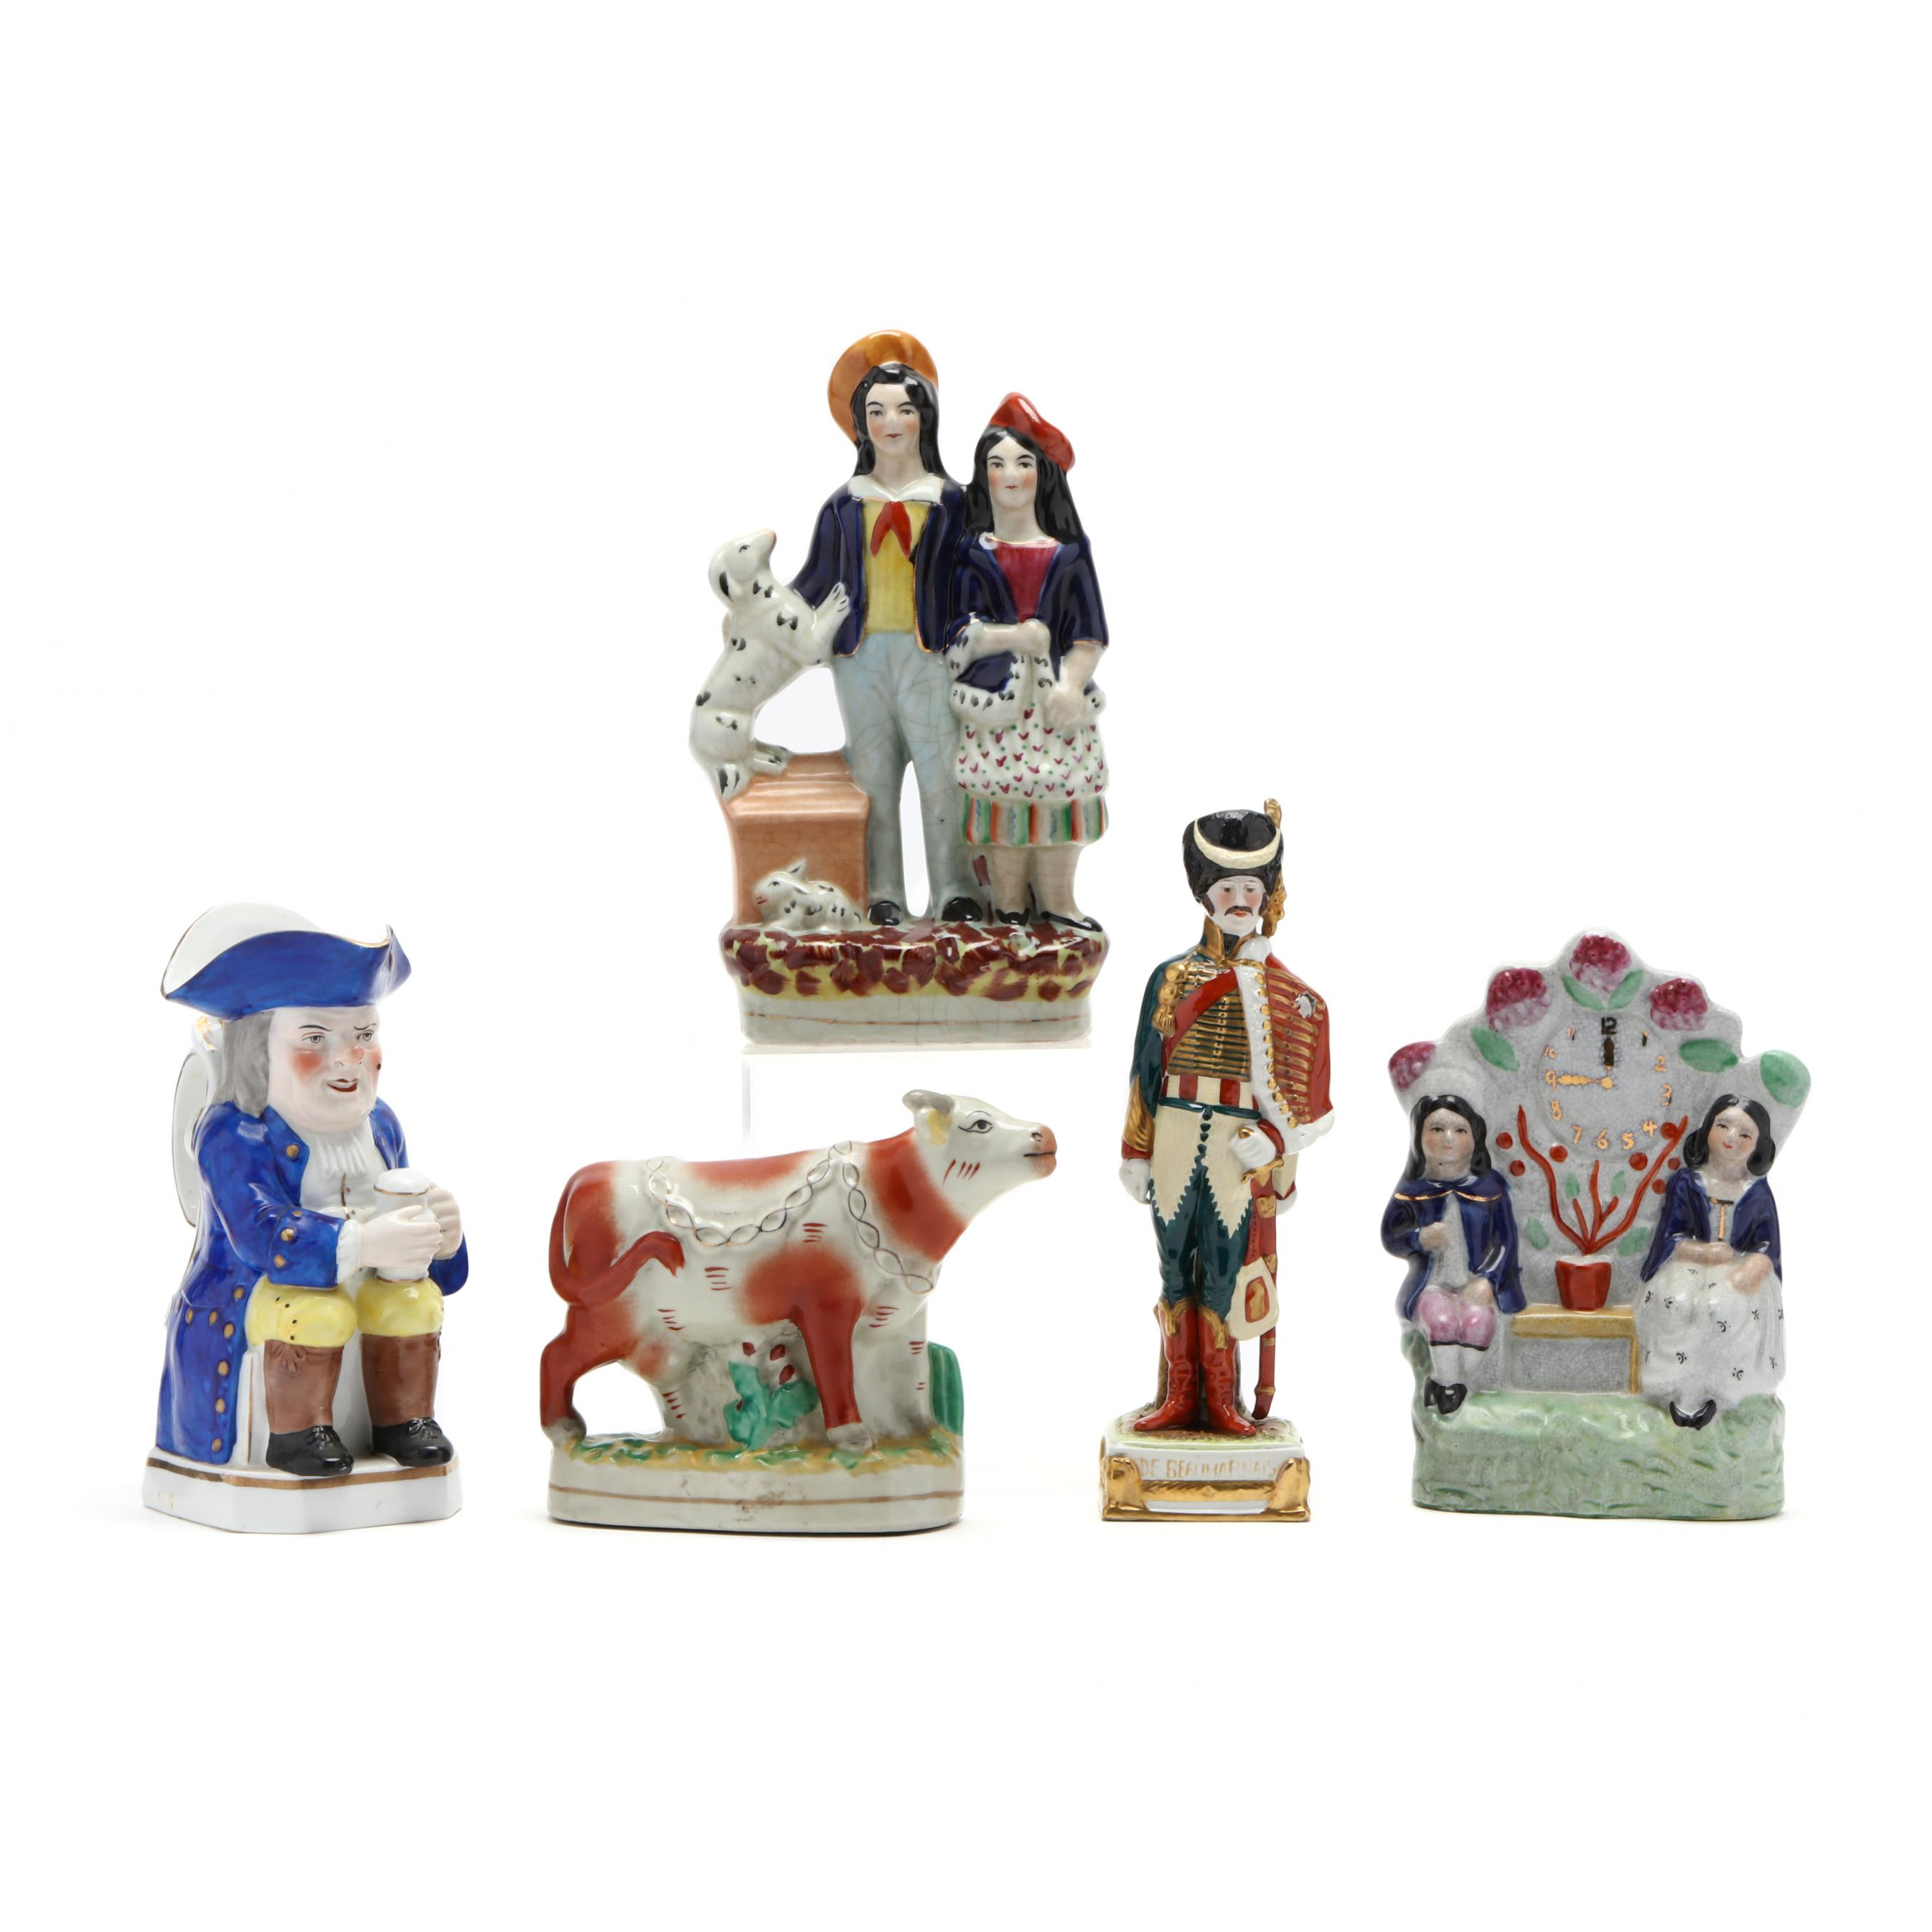 a-group-of-antique-figurines